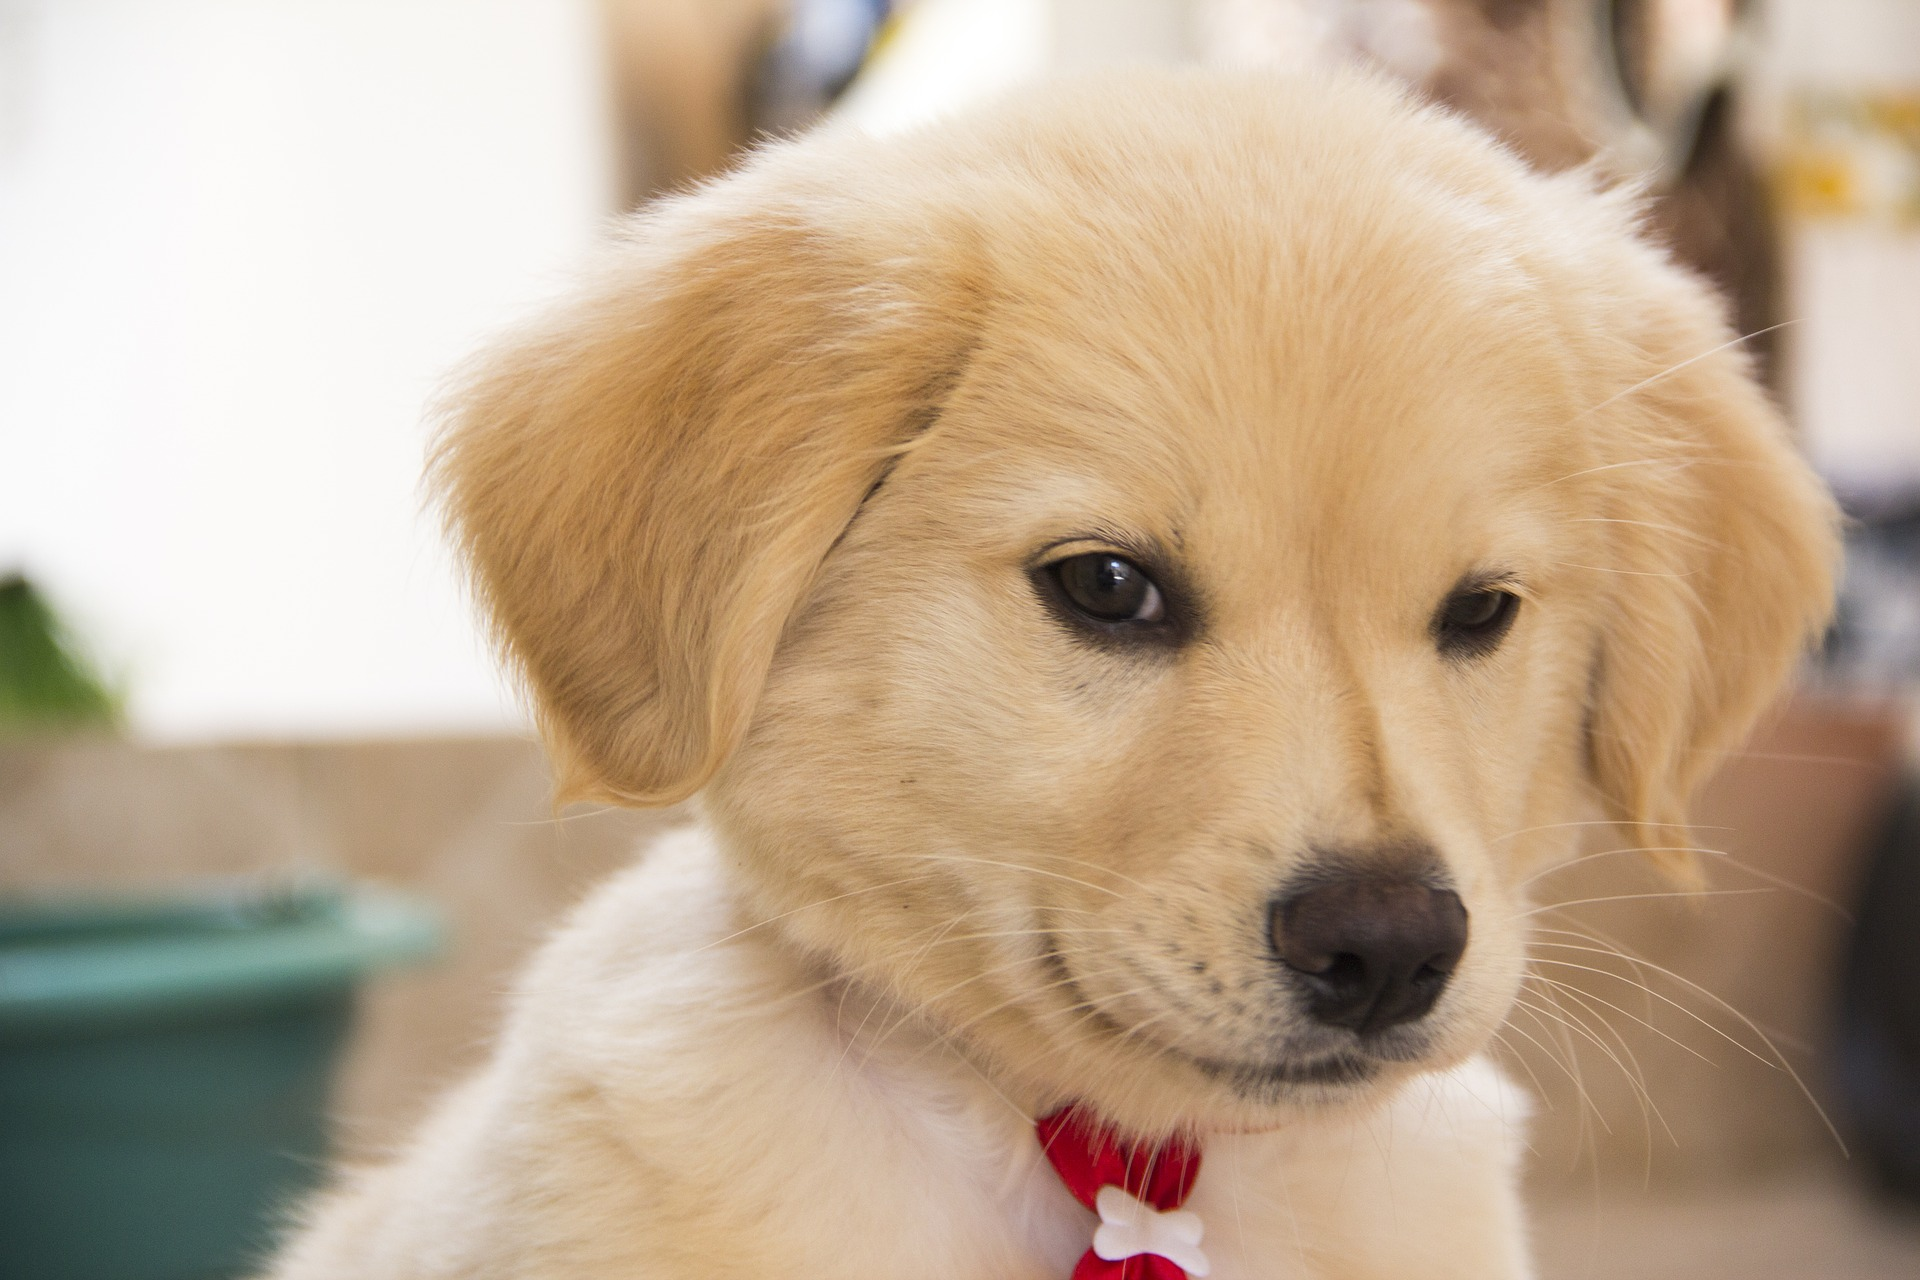 Puppy's face